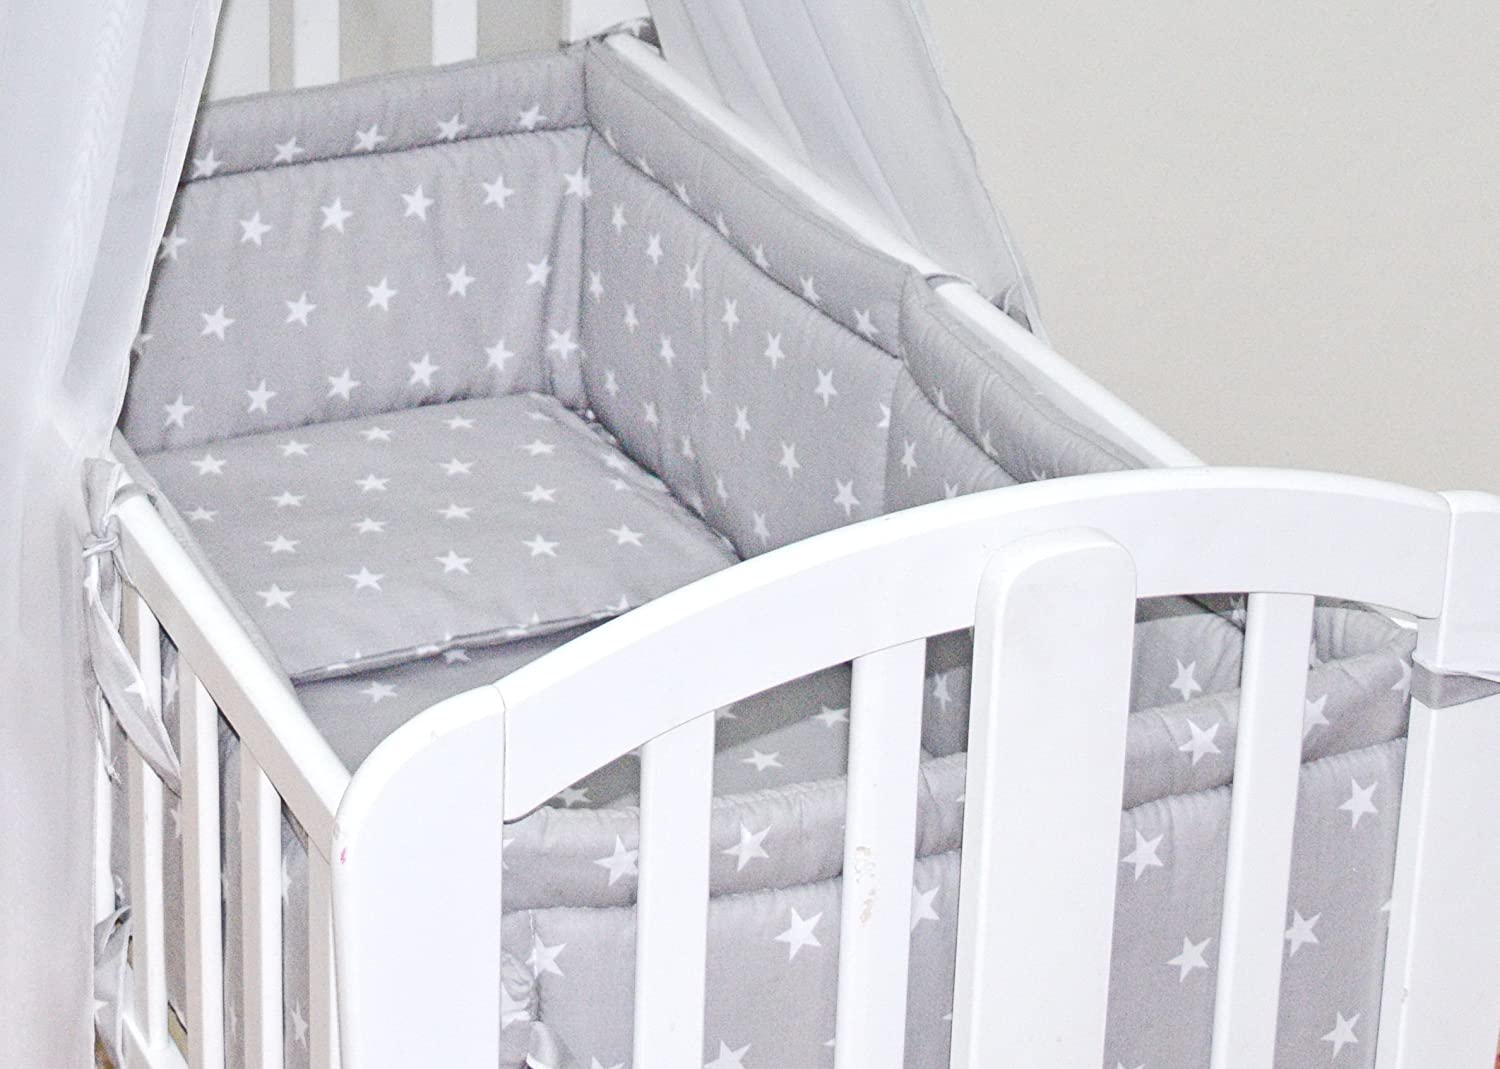 6pcs BABY SWINGING/ROCKING CRIB/CRADLE BEDDING SET/ALL ROUND BUMPER 100% COTTON (White) MDSS LTD